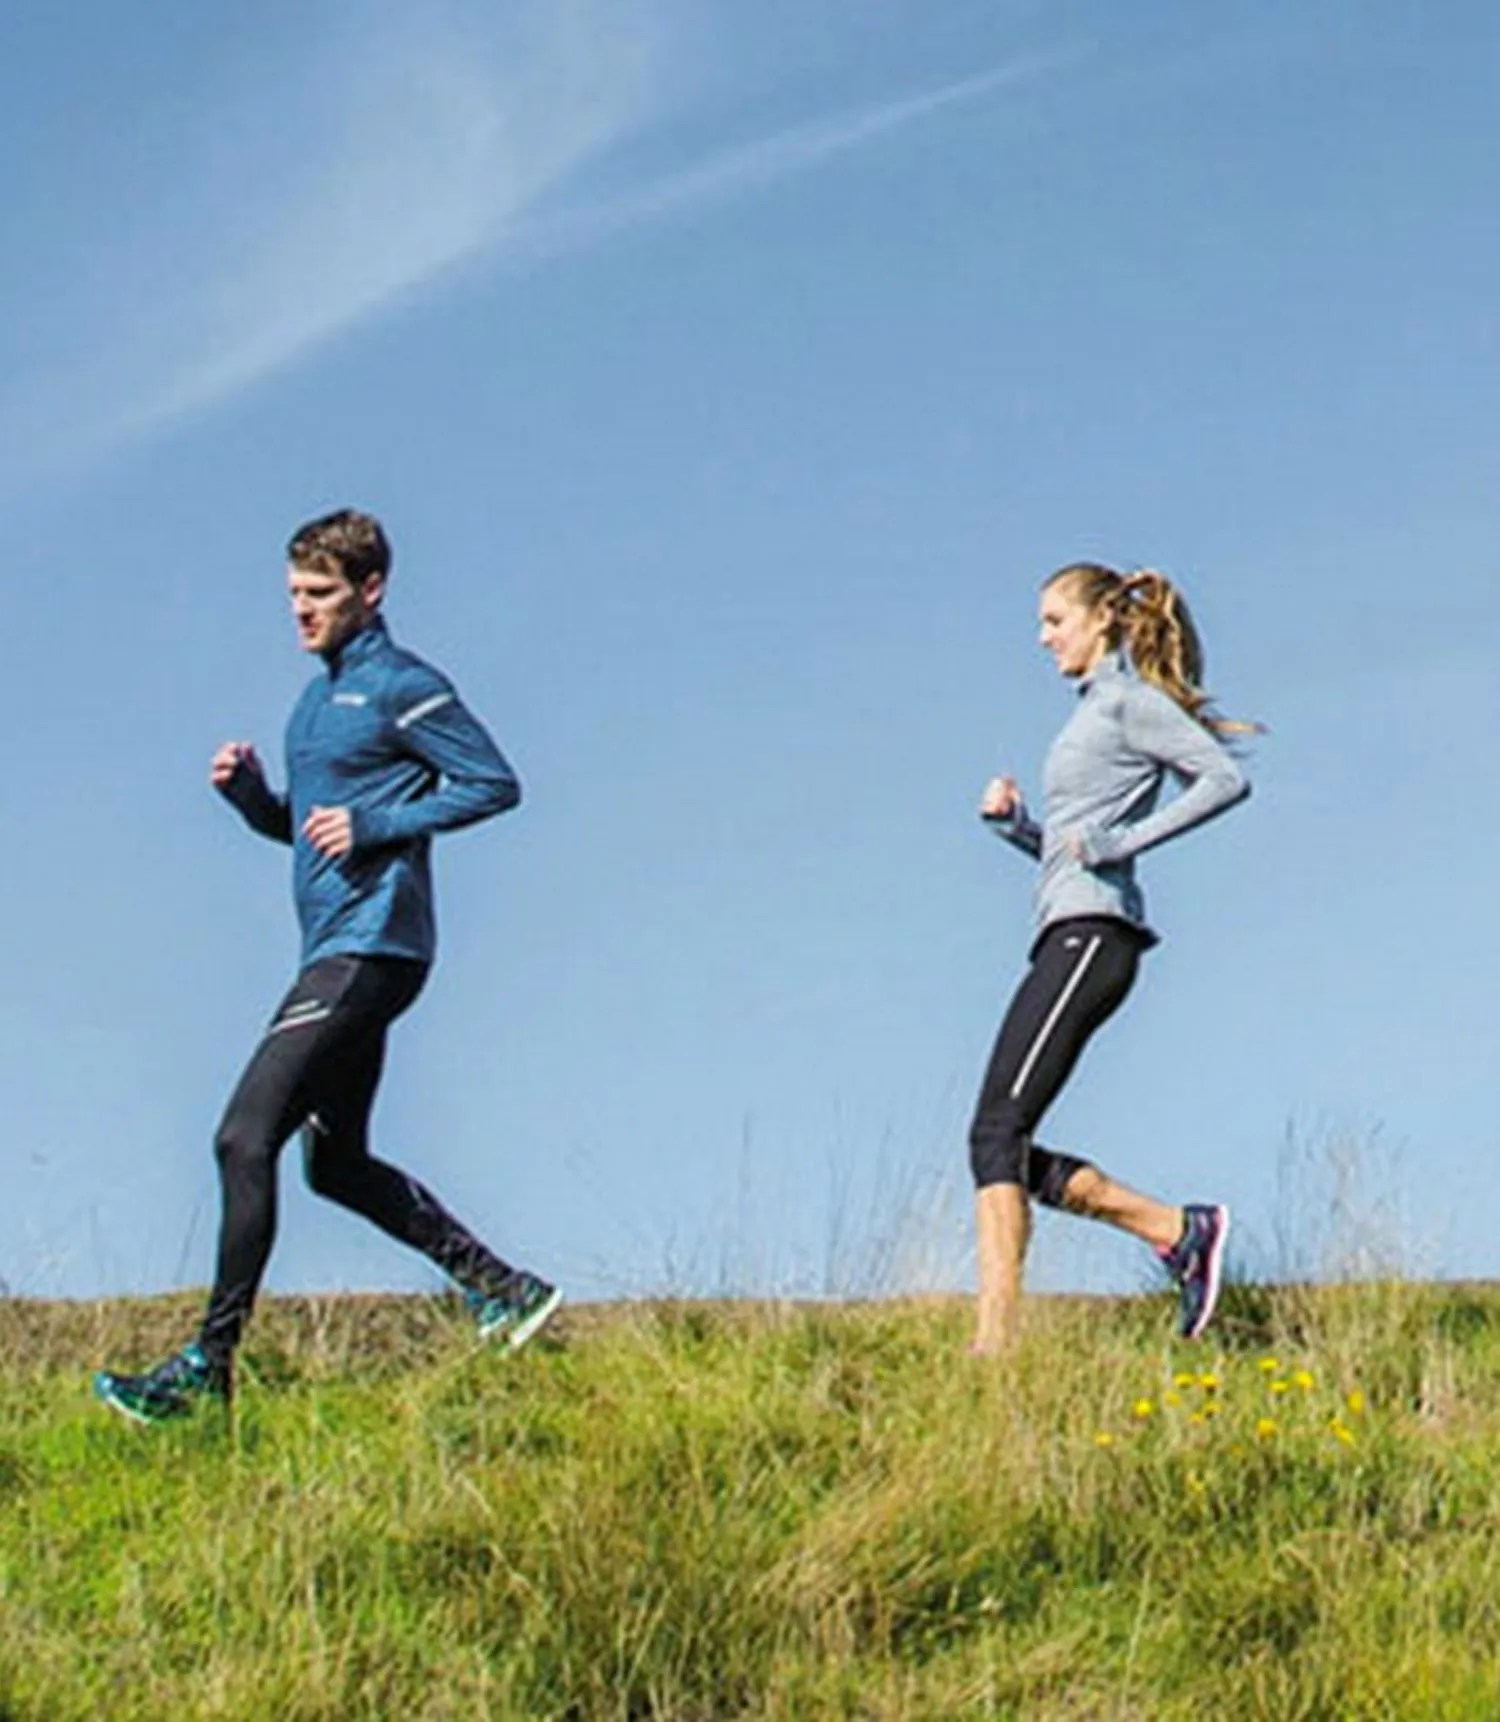 Jogging Run Time New Study Slow Jogging Leads To Longer Life Than Running